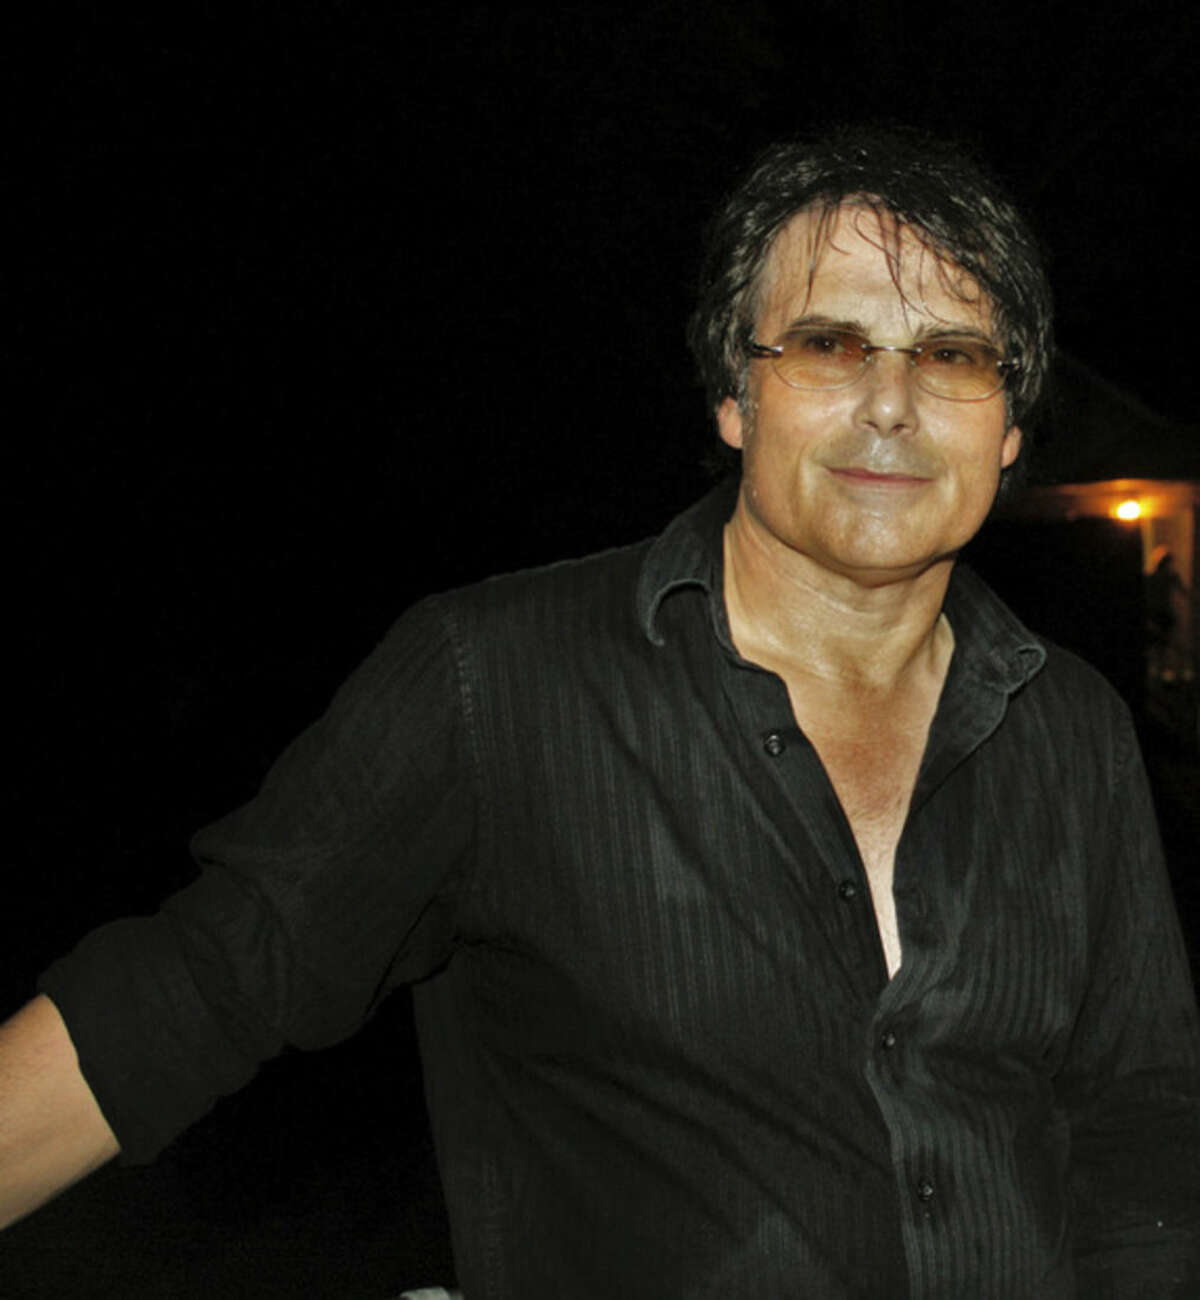 This undated photo provided by Sally J. Irwin shows Jimi Jamison in Chicago. Jamison, who sang lead on Survivor hits such as